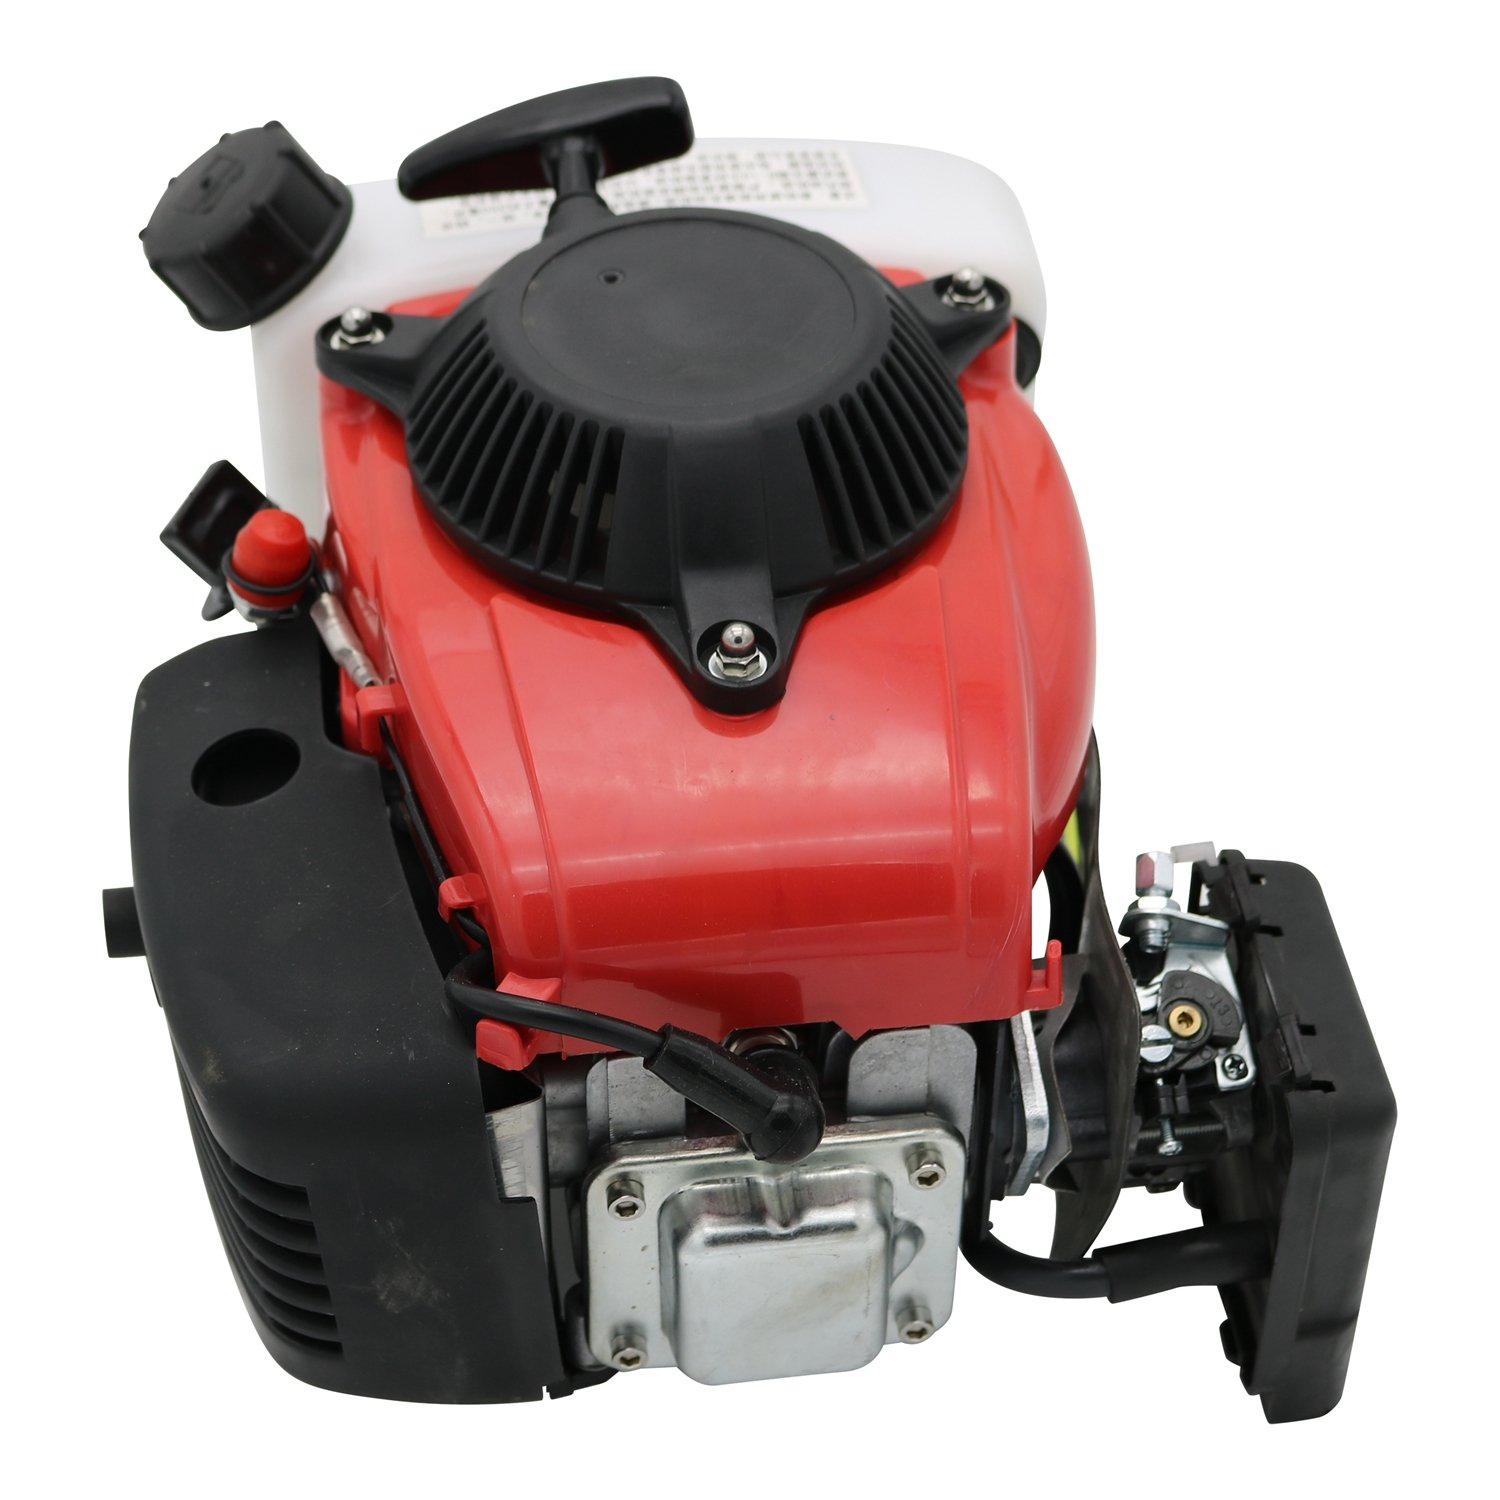 Zhongfa engine 52cc for outboard motor earth Drilling Machine 4 stroke Petrol by Zhongfa